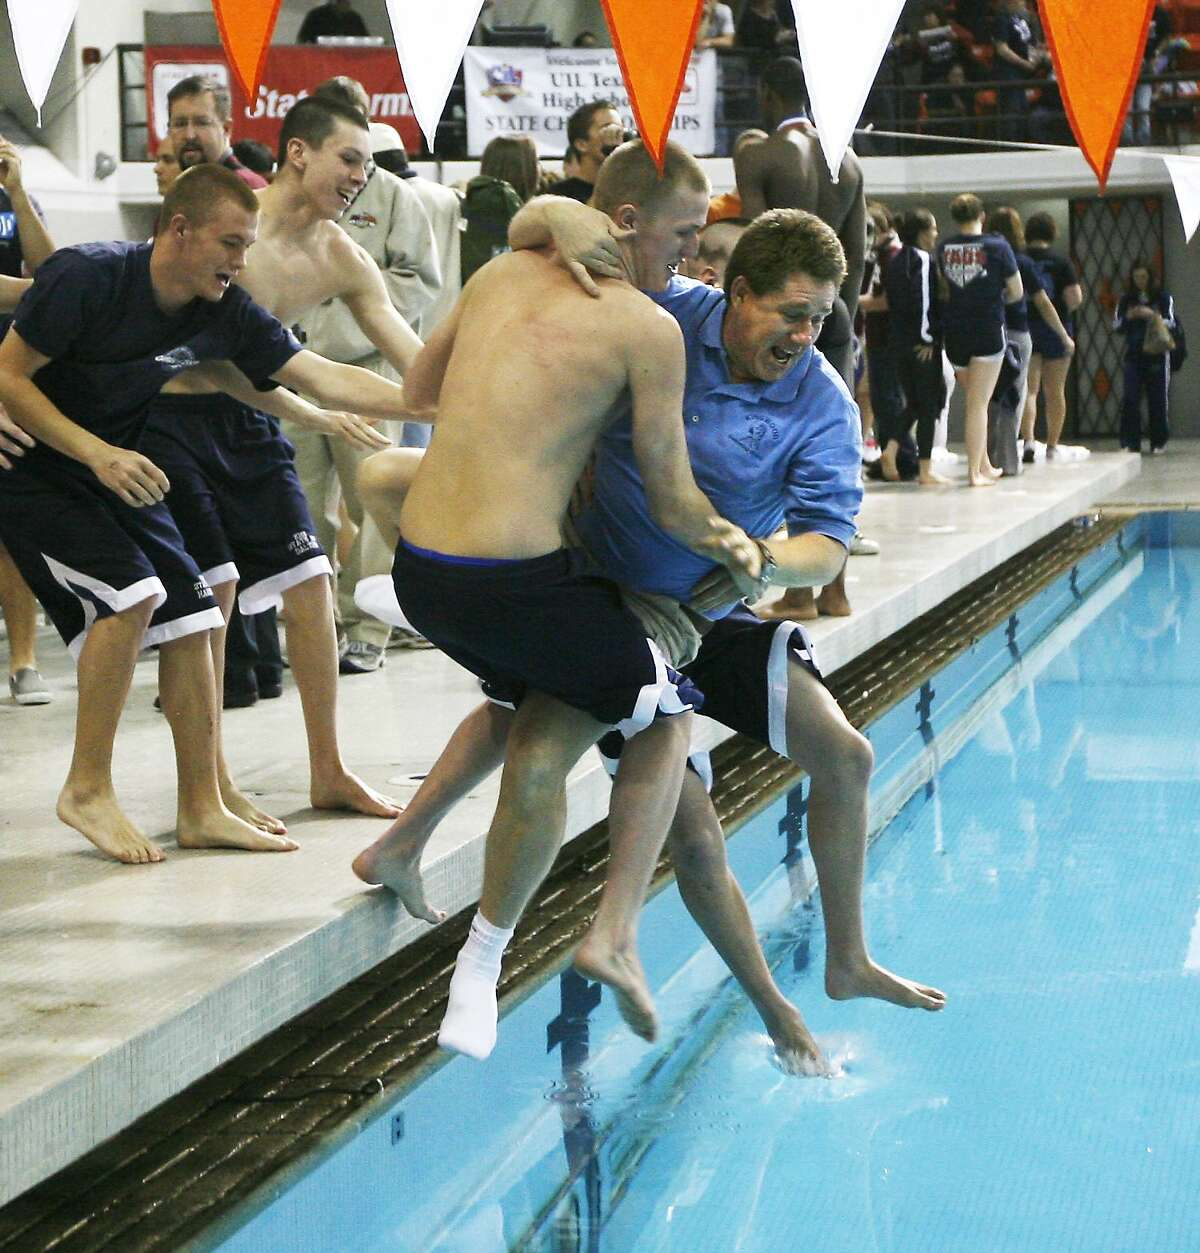 2/28/09 -- Humble Kingwood swimmers push head coach Russell Duin into the pool after winning the Boys' team standings at the UIL 5A Swimming State Championships at the Jamail Texas Swimming Center in Austin, Texas. Saturday, February 28, 2009 -- THE DALLAS MORNING NEWS